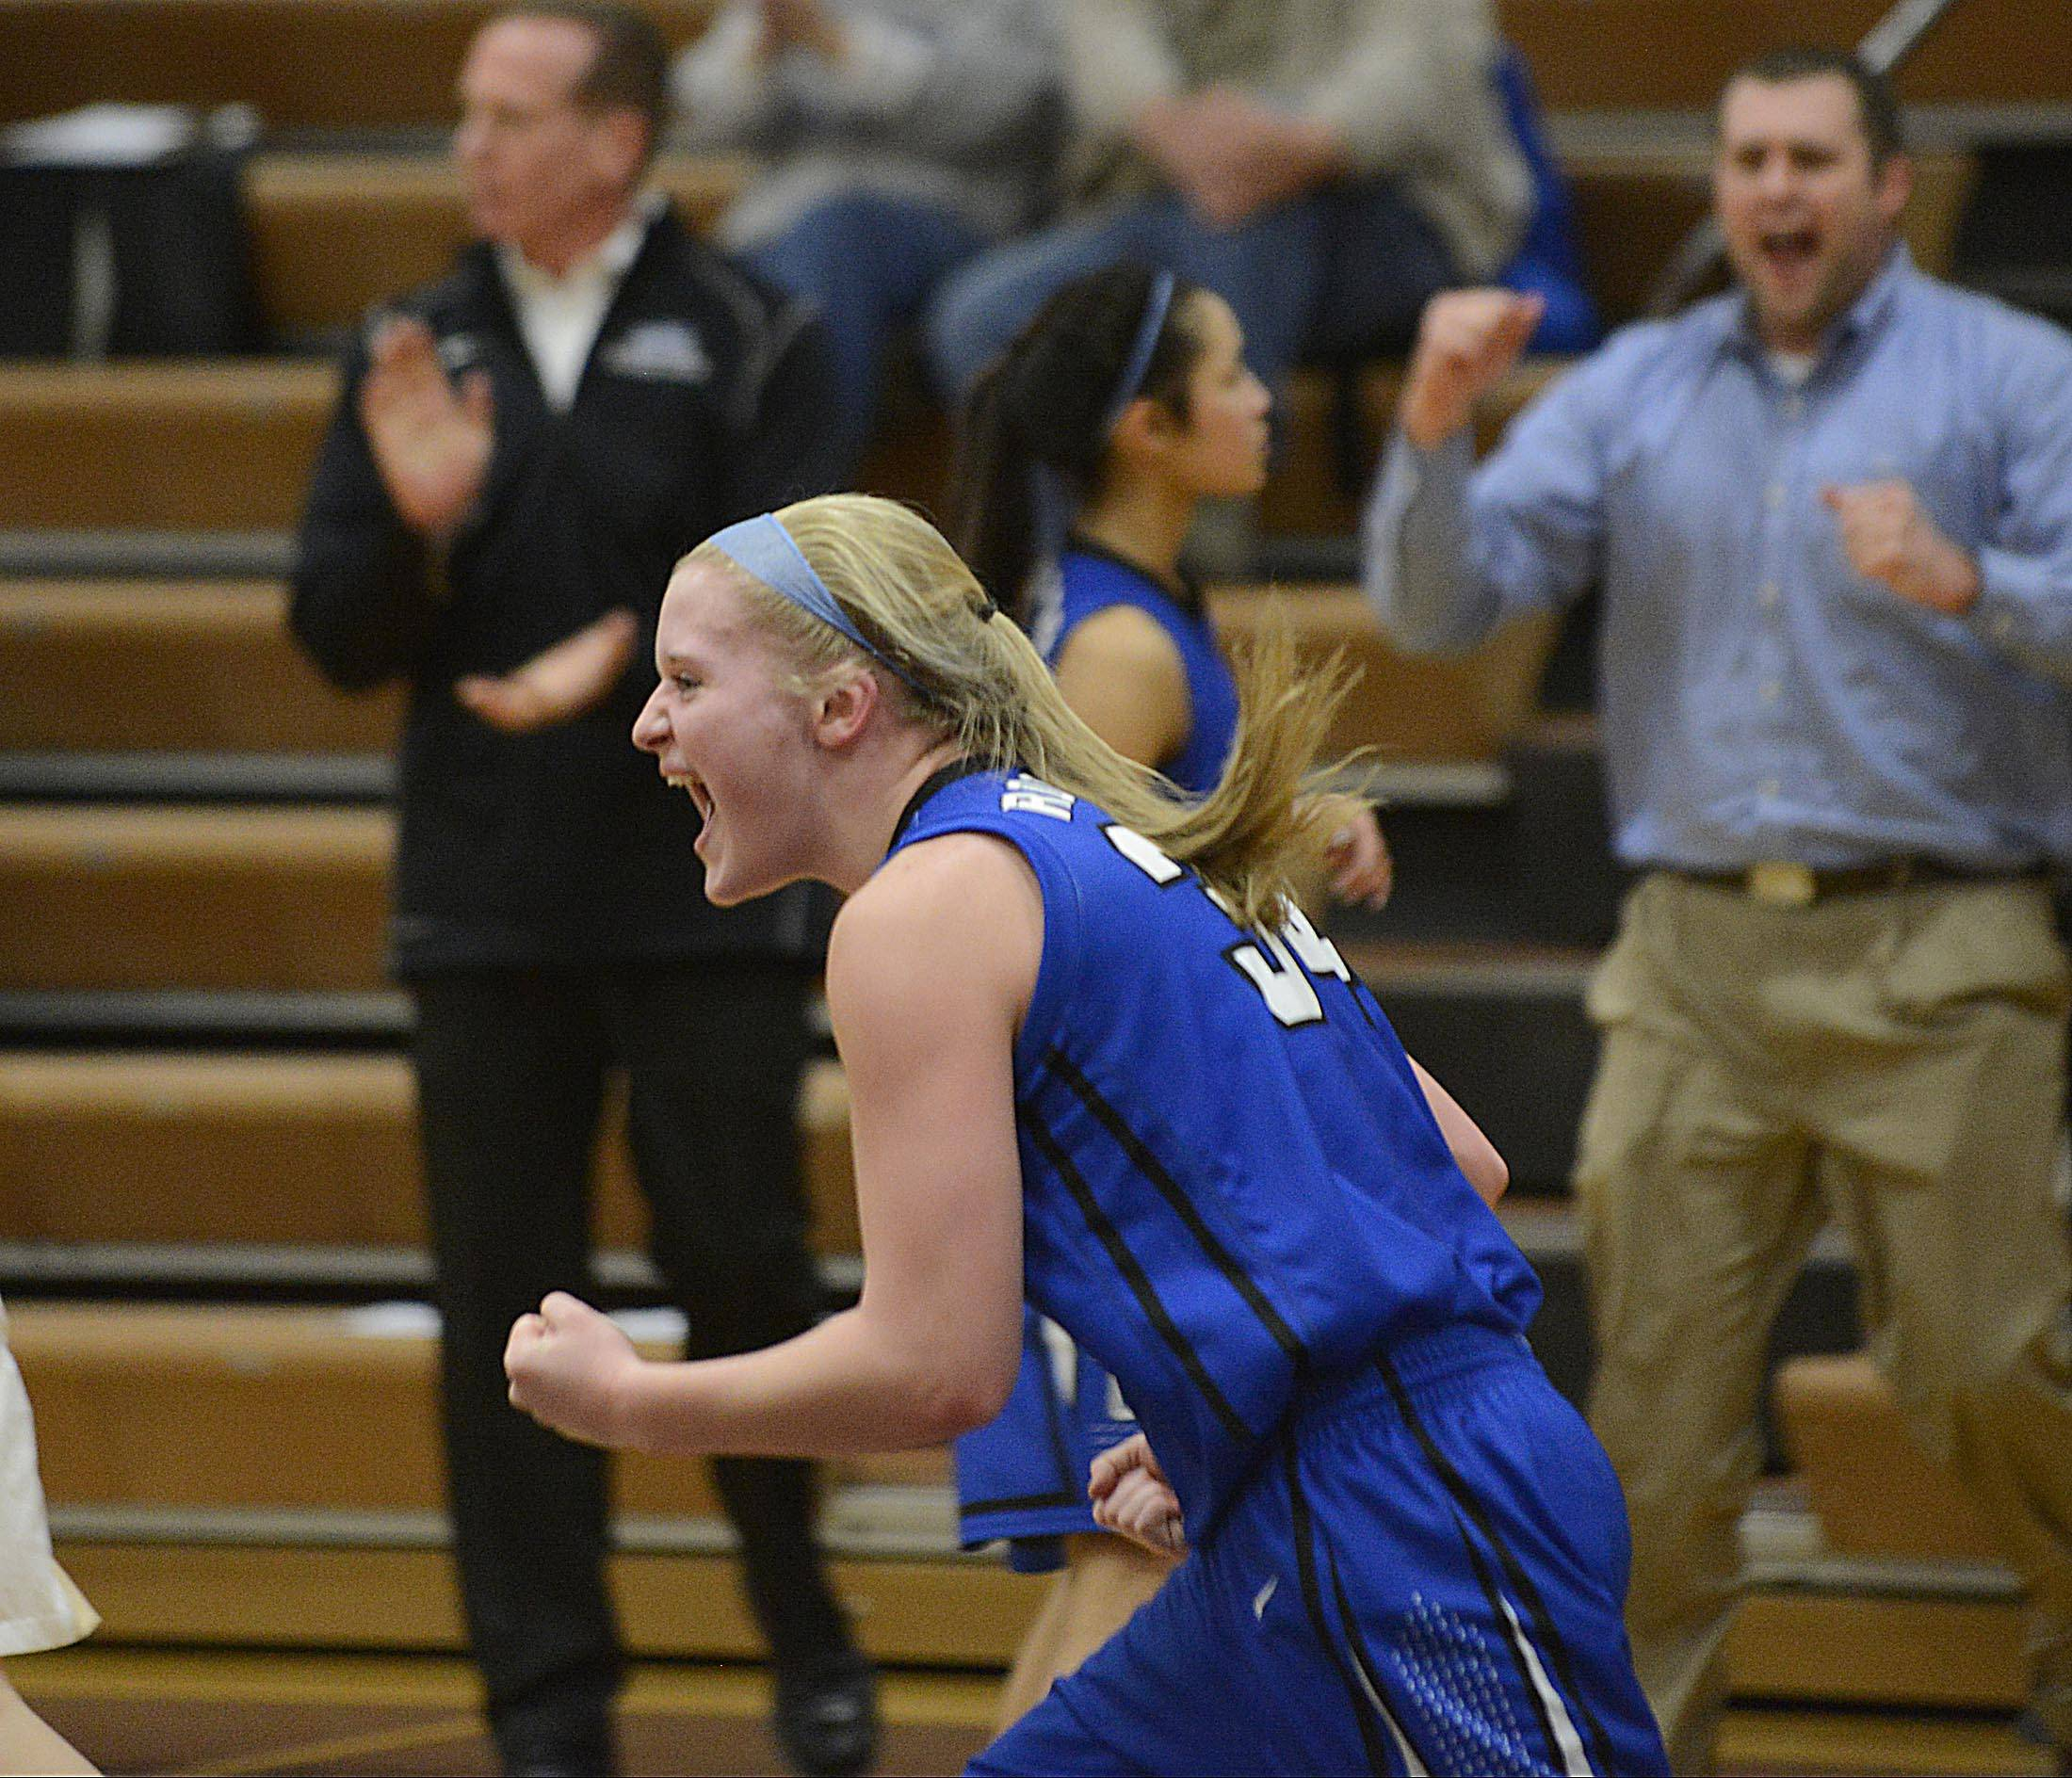 Burlington Central's Sam Pryor celebrates a Rockets' basket during Monday's Class 3A Belvidere sectional win over Sycamore.